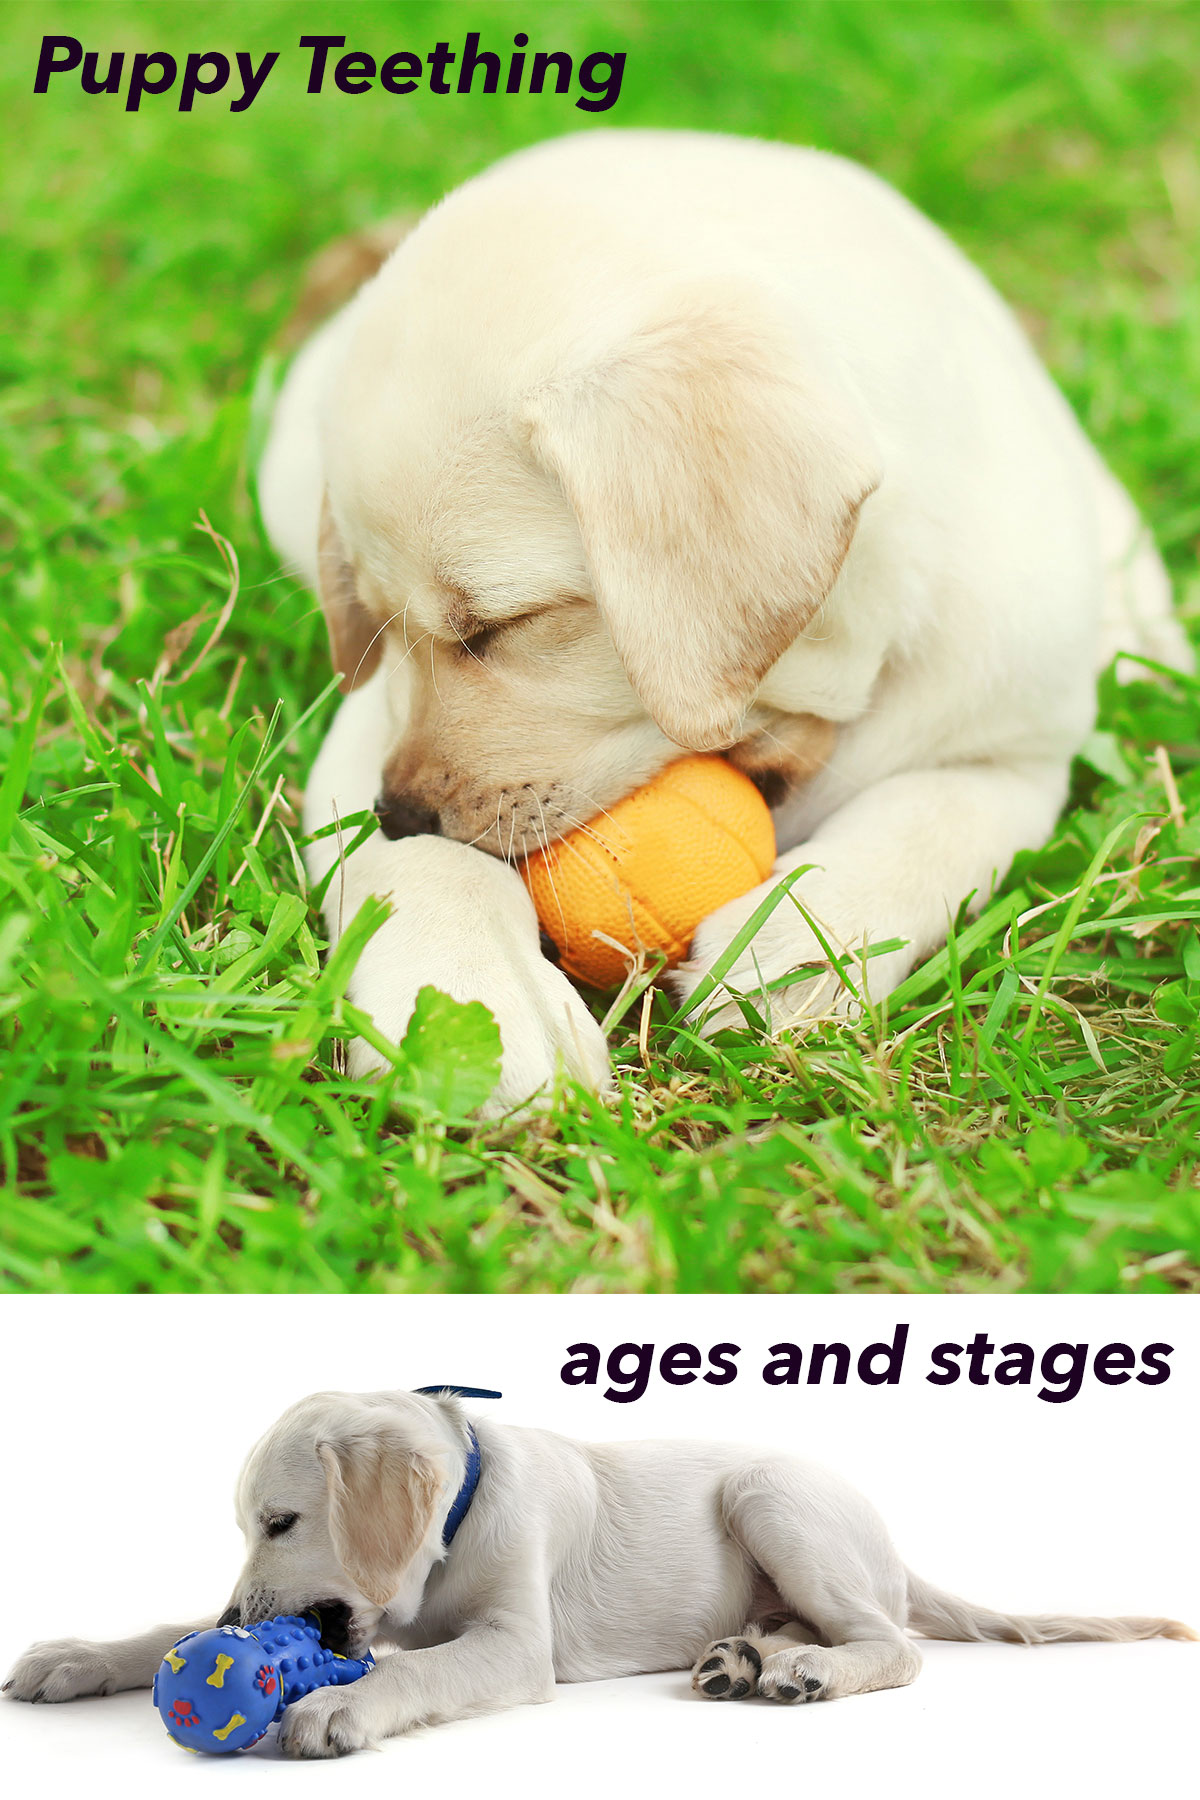 Everything you ever wanted to know about puppy teeth and teething